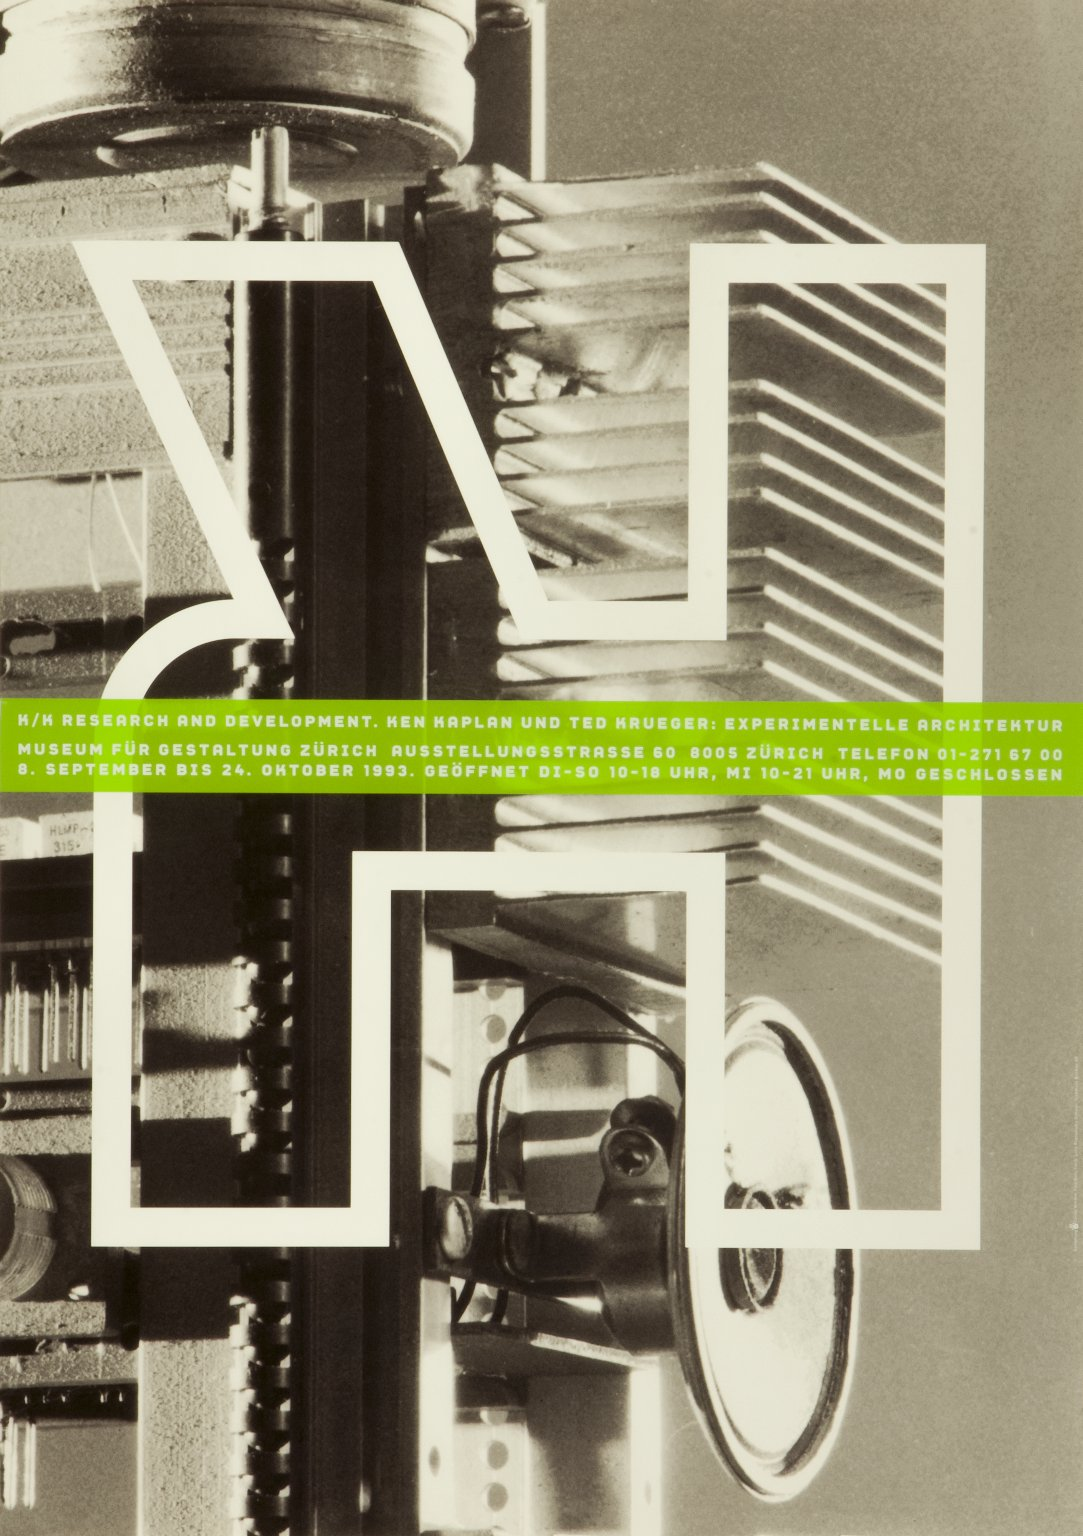 K/K Research and Development Ken Kaplan und Ted Krueger: Experimentelle Architektur